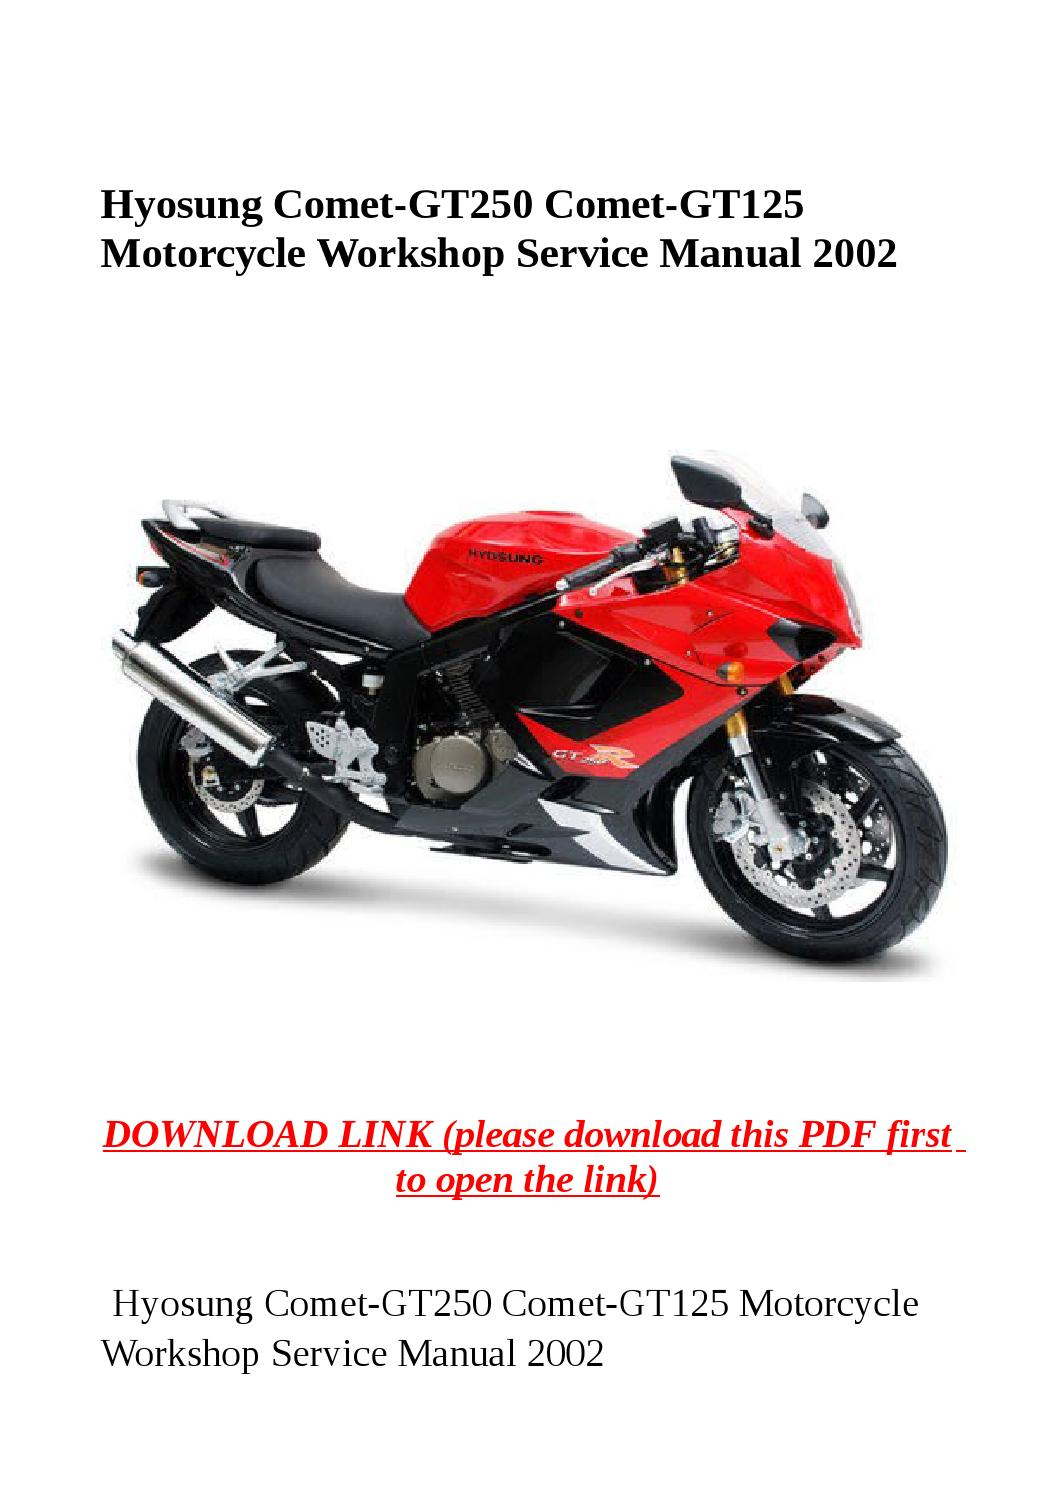 Hyosung comet gt250 comet gt125 motorcycle workshop service manual 2002 by  yghj - issuu